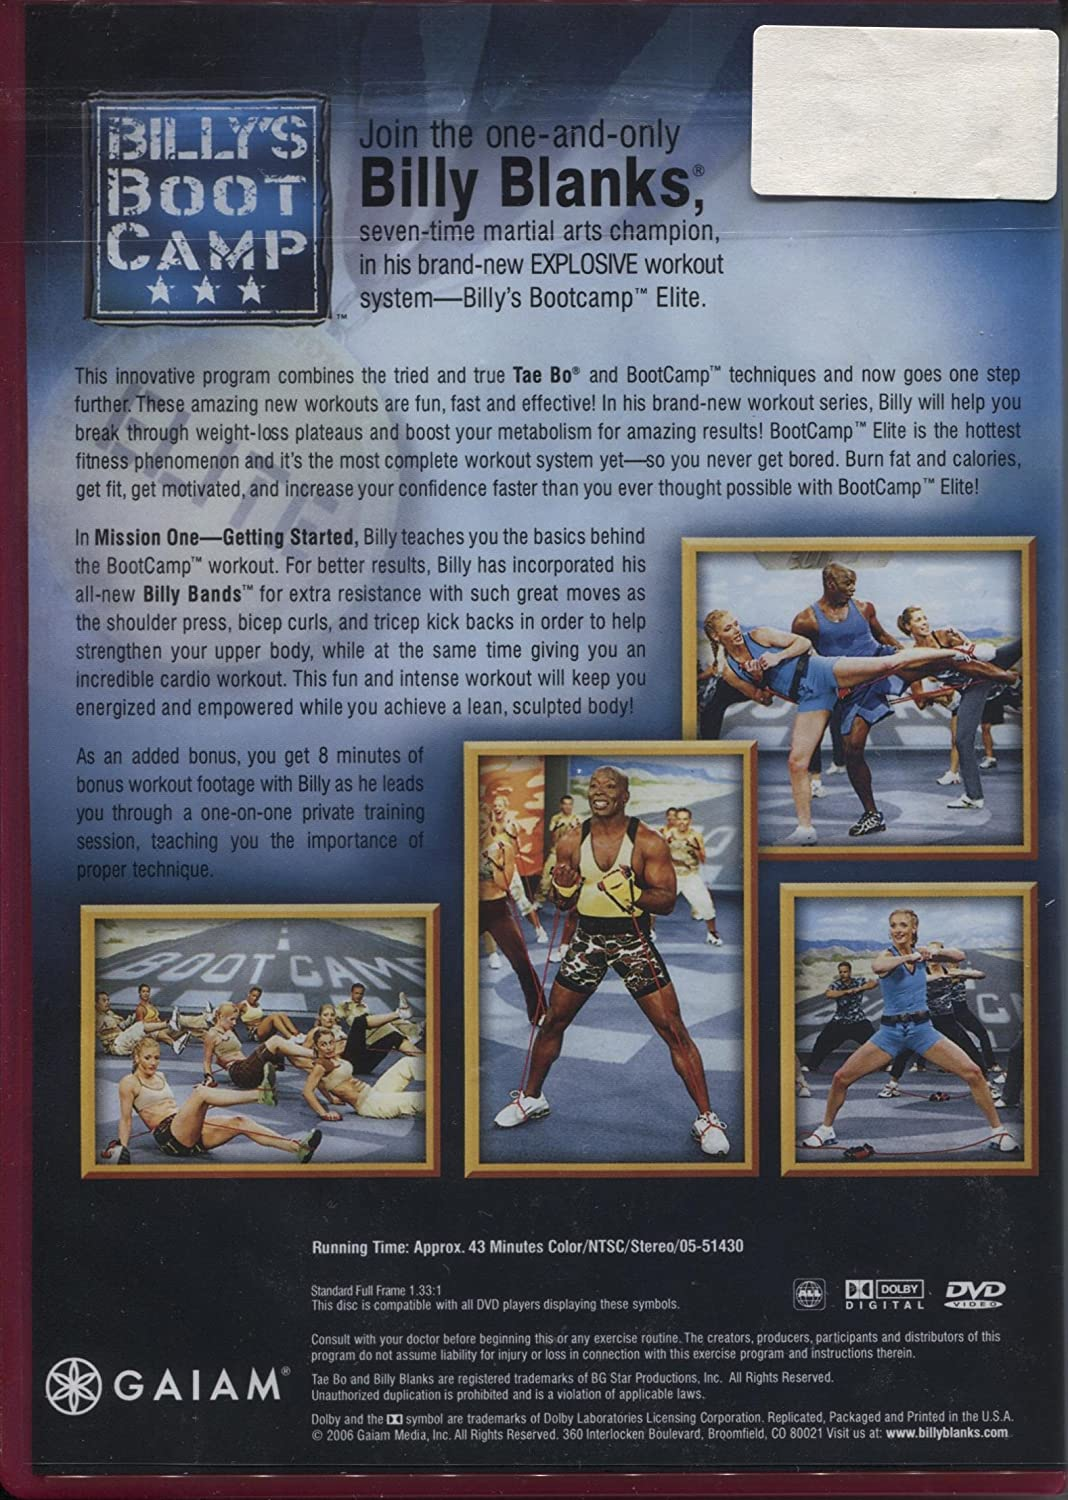 Amazon.com: Billys Bootcamp Elite - Mission One - Get Started: Billy Blanks: Movies & TV